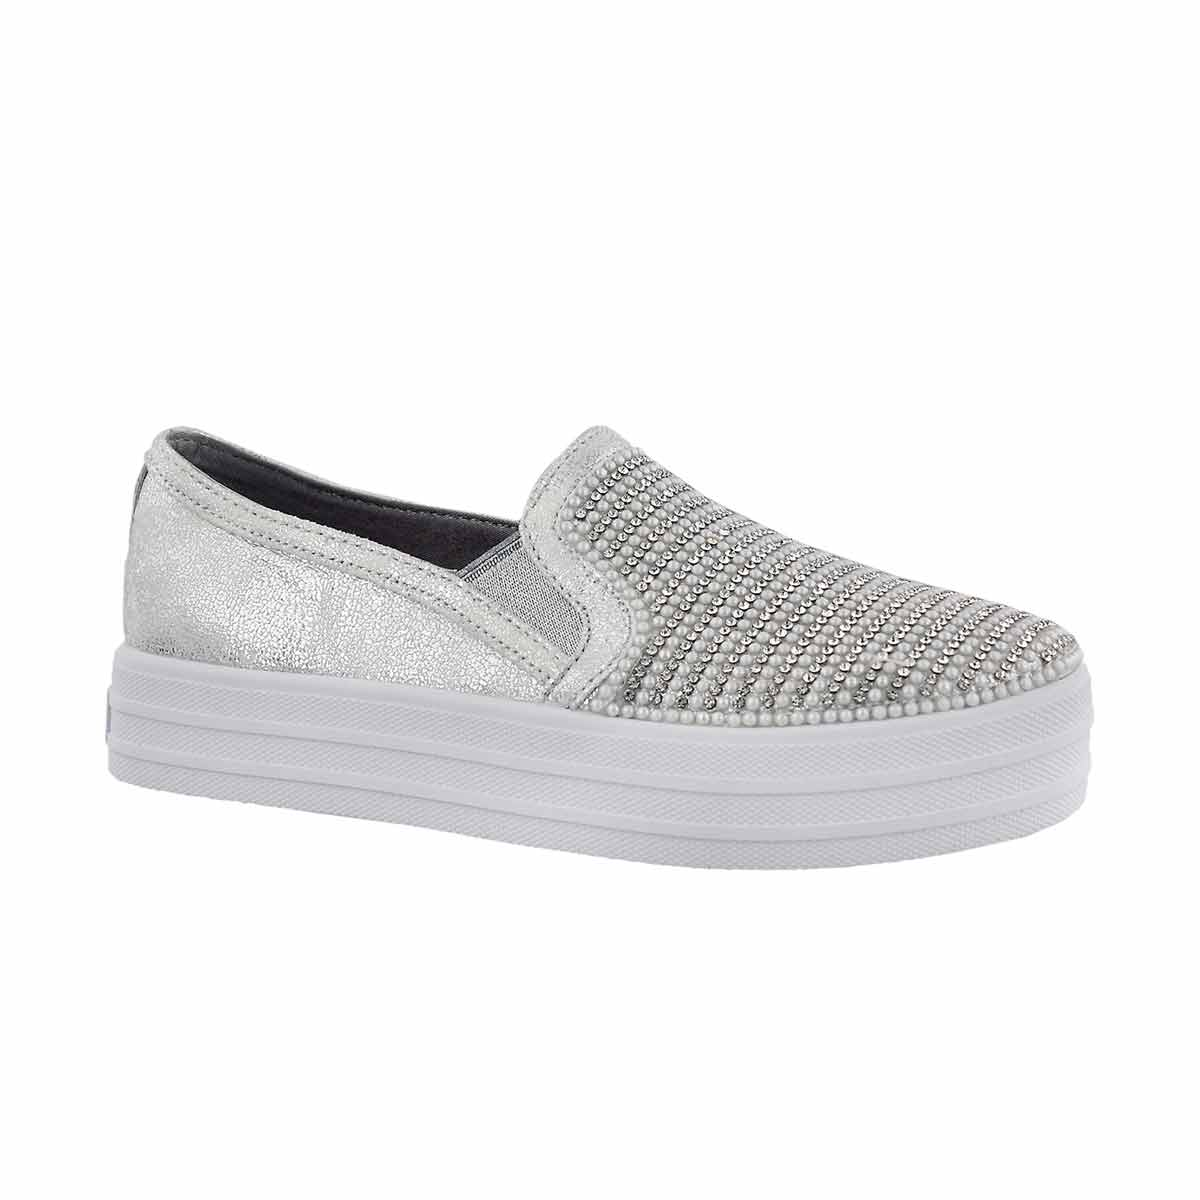 Girls' DOUBLE UP SHINY DANCER silver slip ons